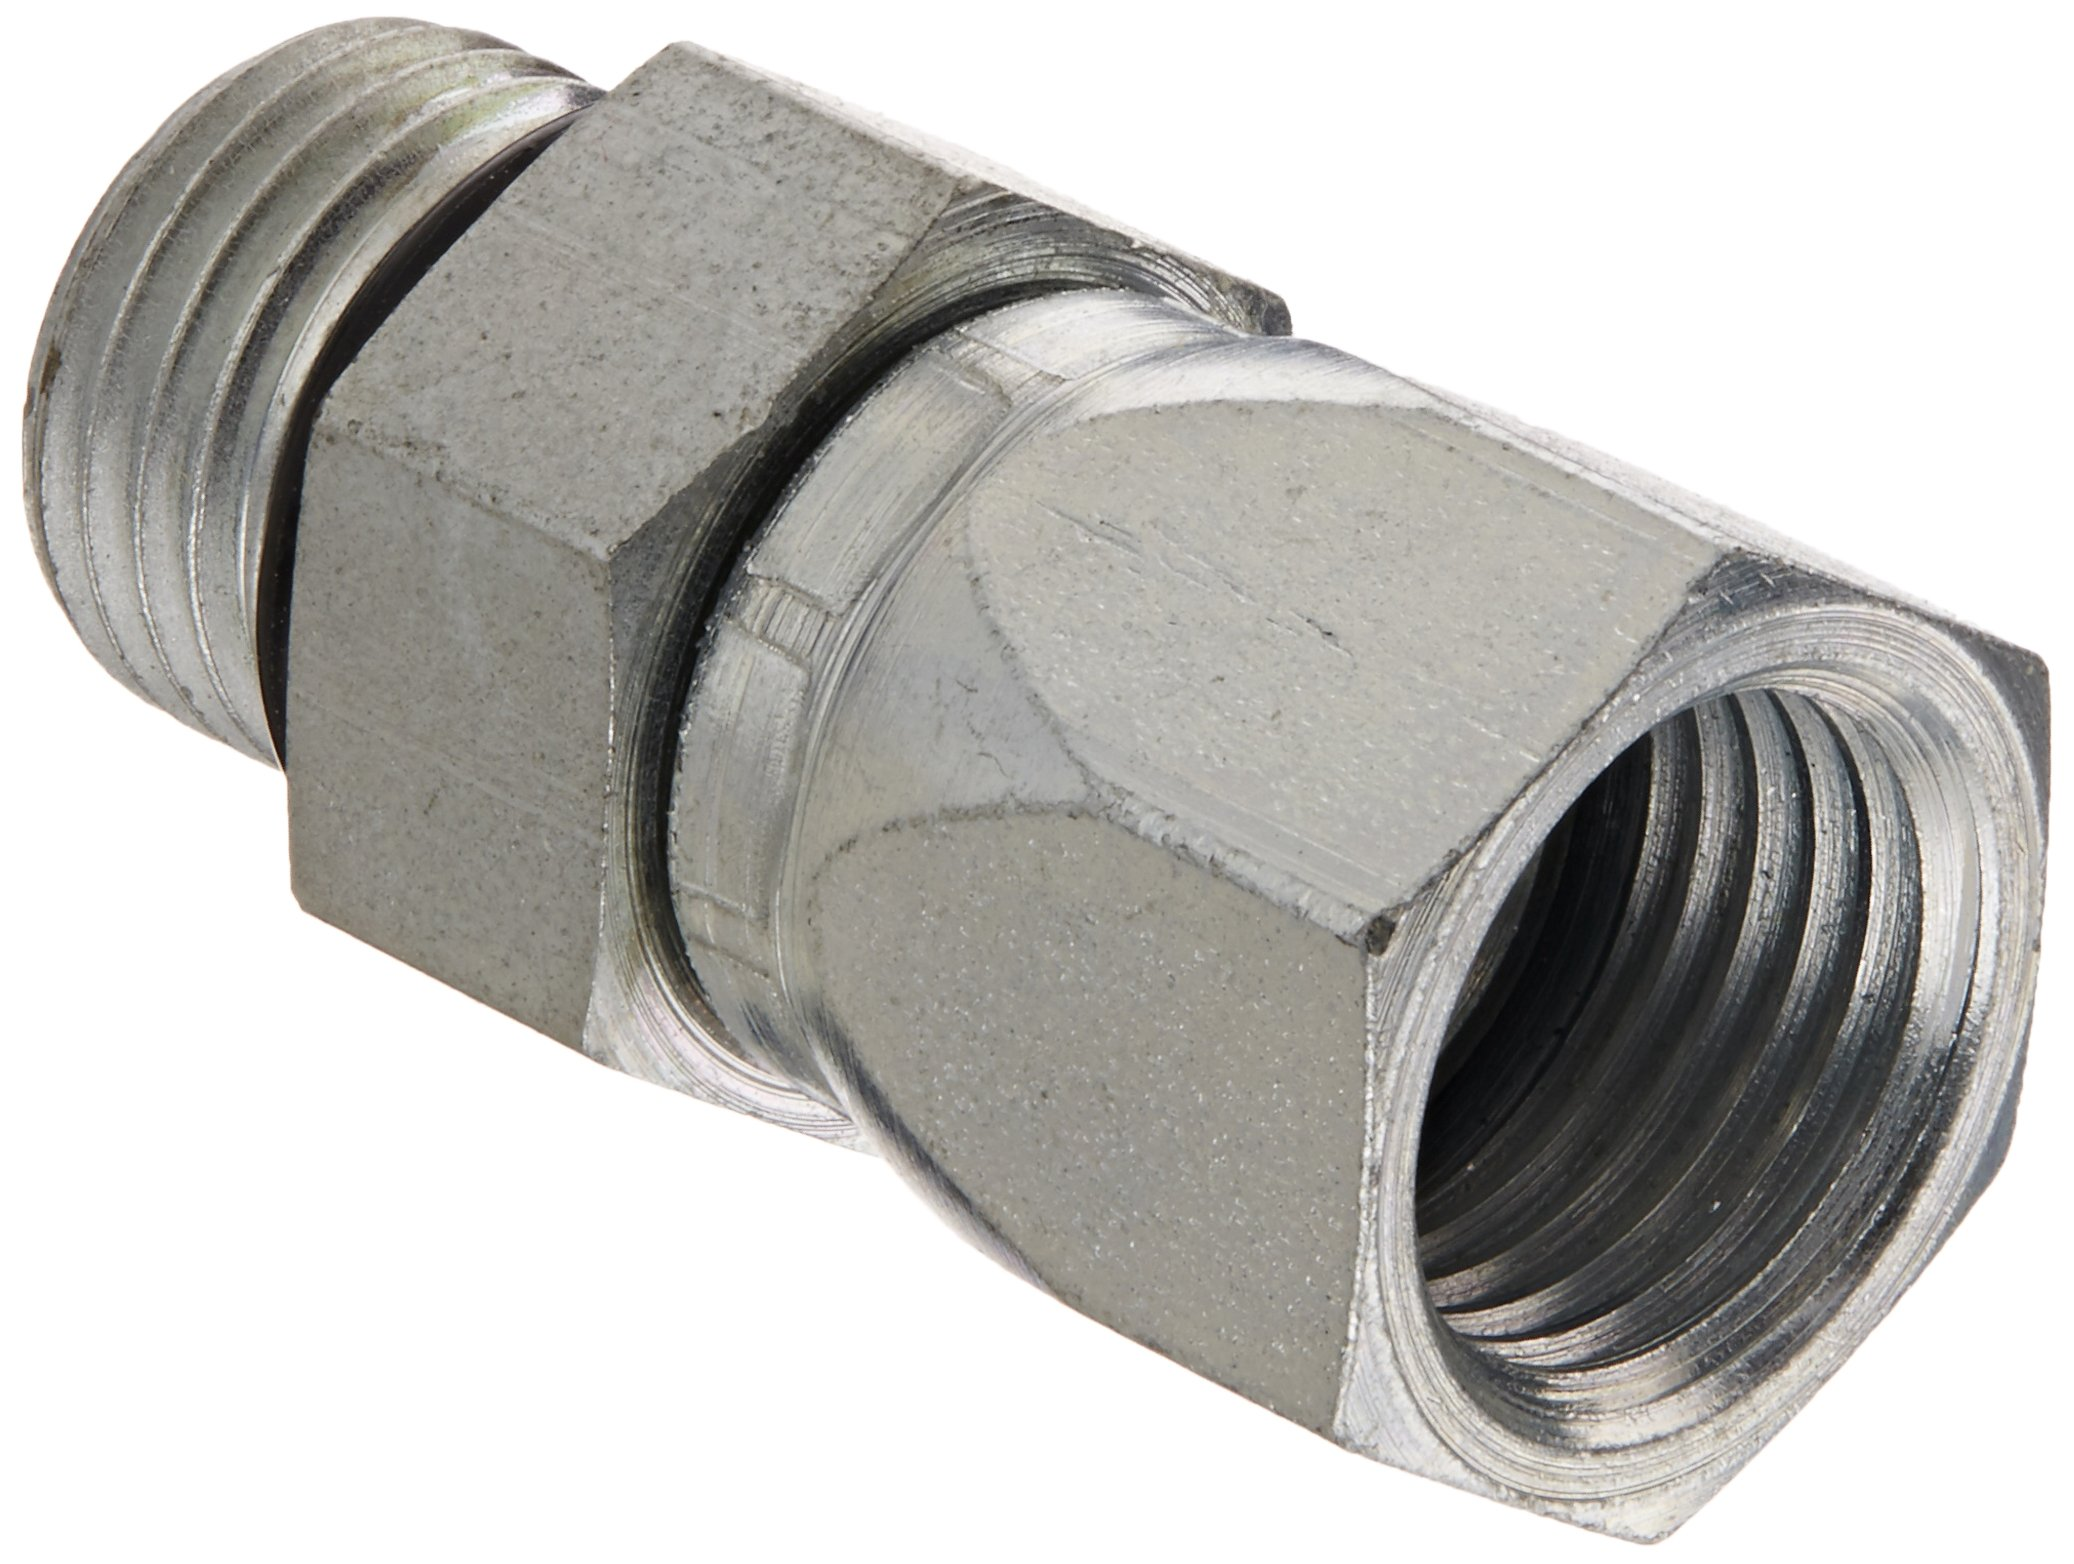 Eaton Weatherhead C5315X6 Carbon Steel SAE 37 Degree Eaton Products Pack of 10 Flare-Twin Fitting JIC Adapter 3//8 Straight Thread O-Ring Boss x 3//8 JIC Male Pack of 10 3//8 Straight Thread O-Ring Boss x 3//8 JIC Male